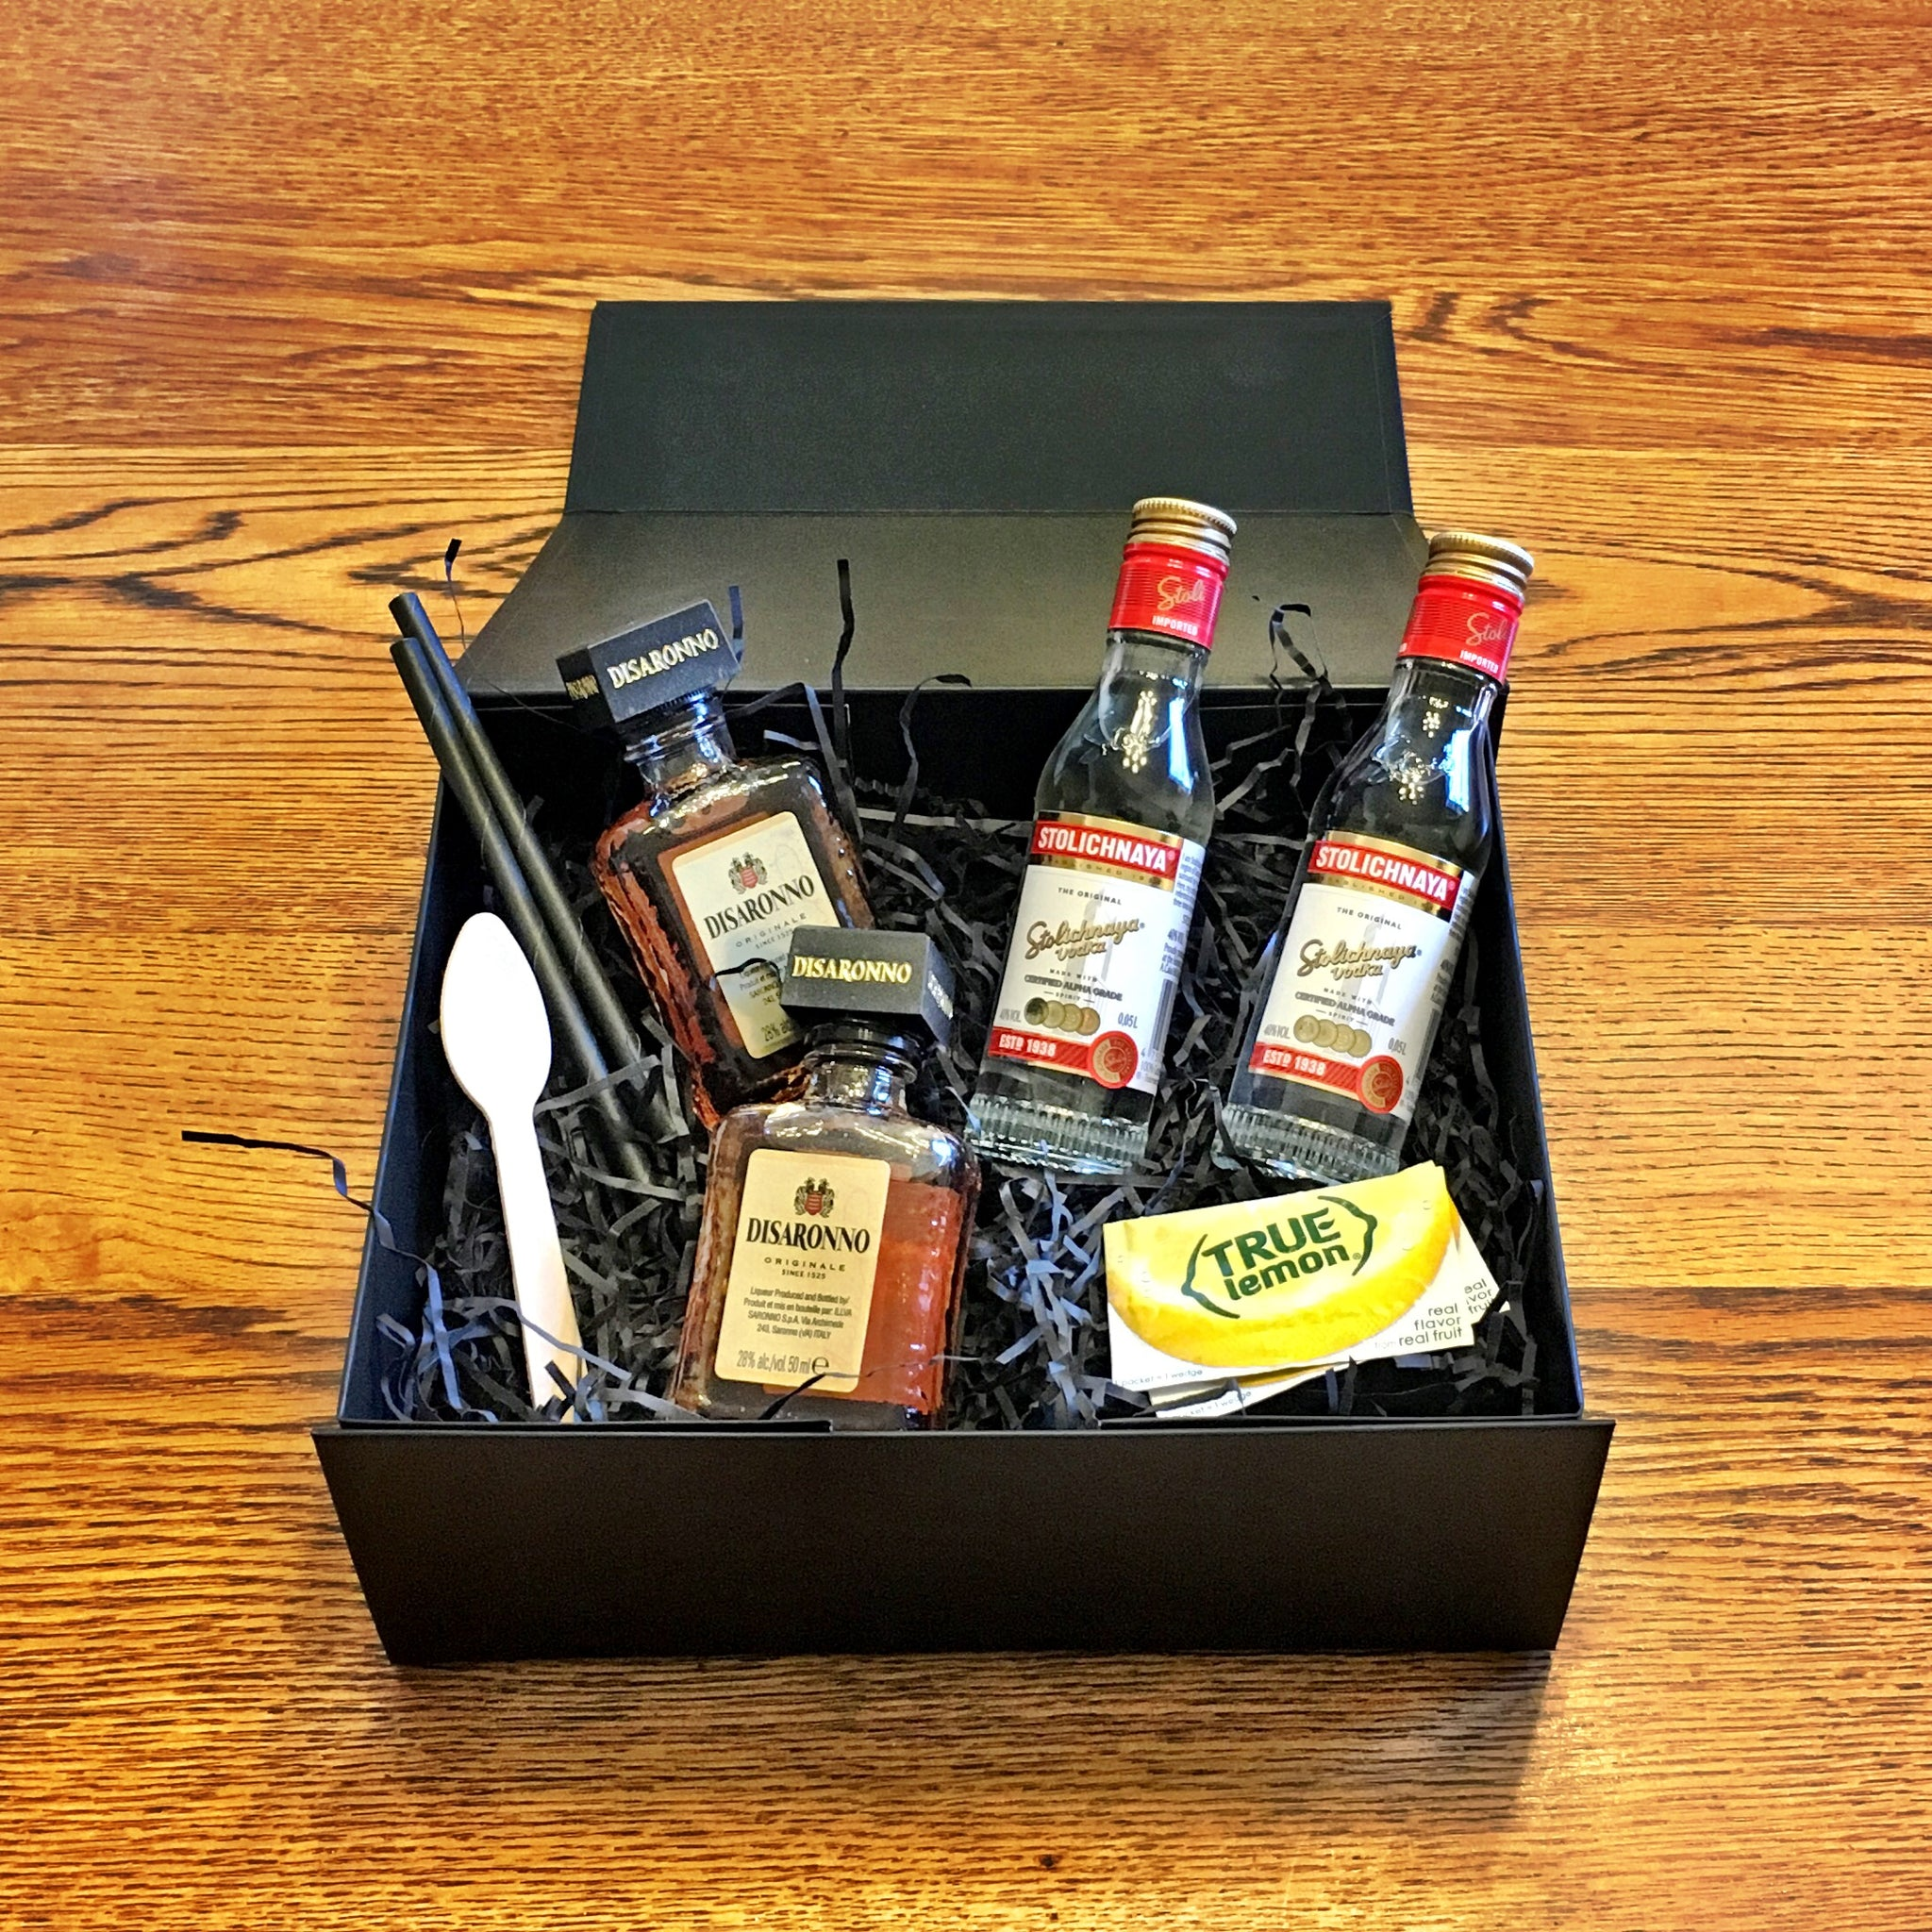 Inside Godmother cocktail kit